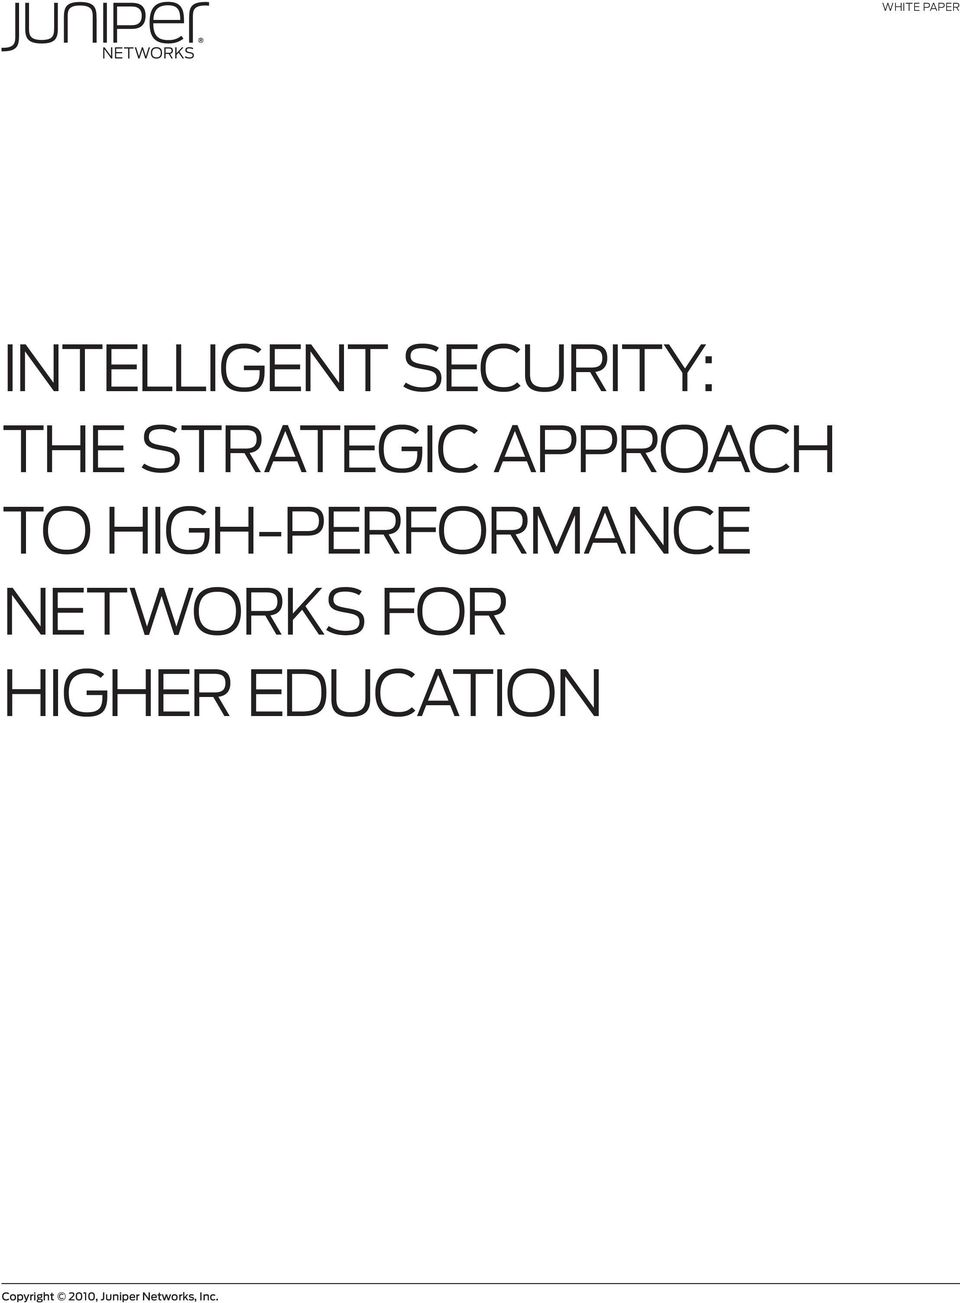 HIGH-PERFORMANCE NETWORKS FOR HIGHER